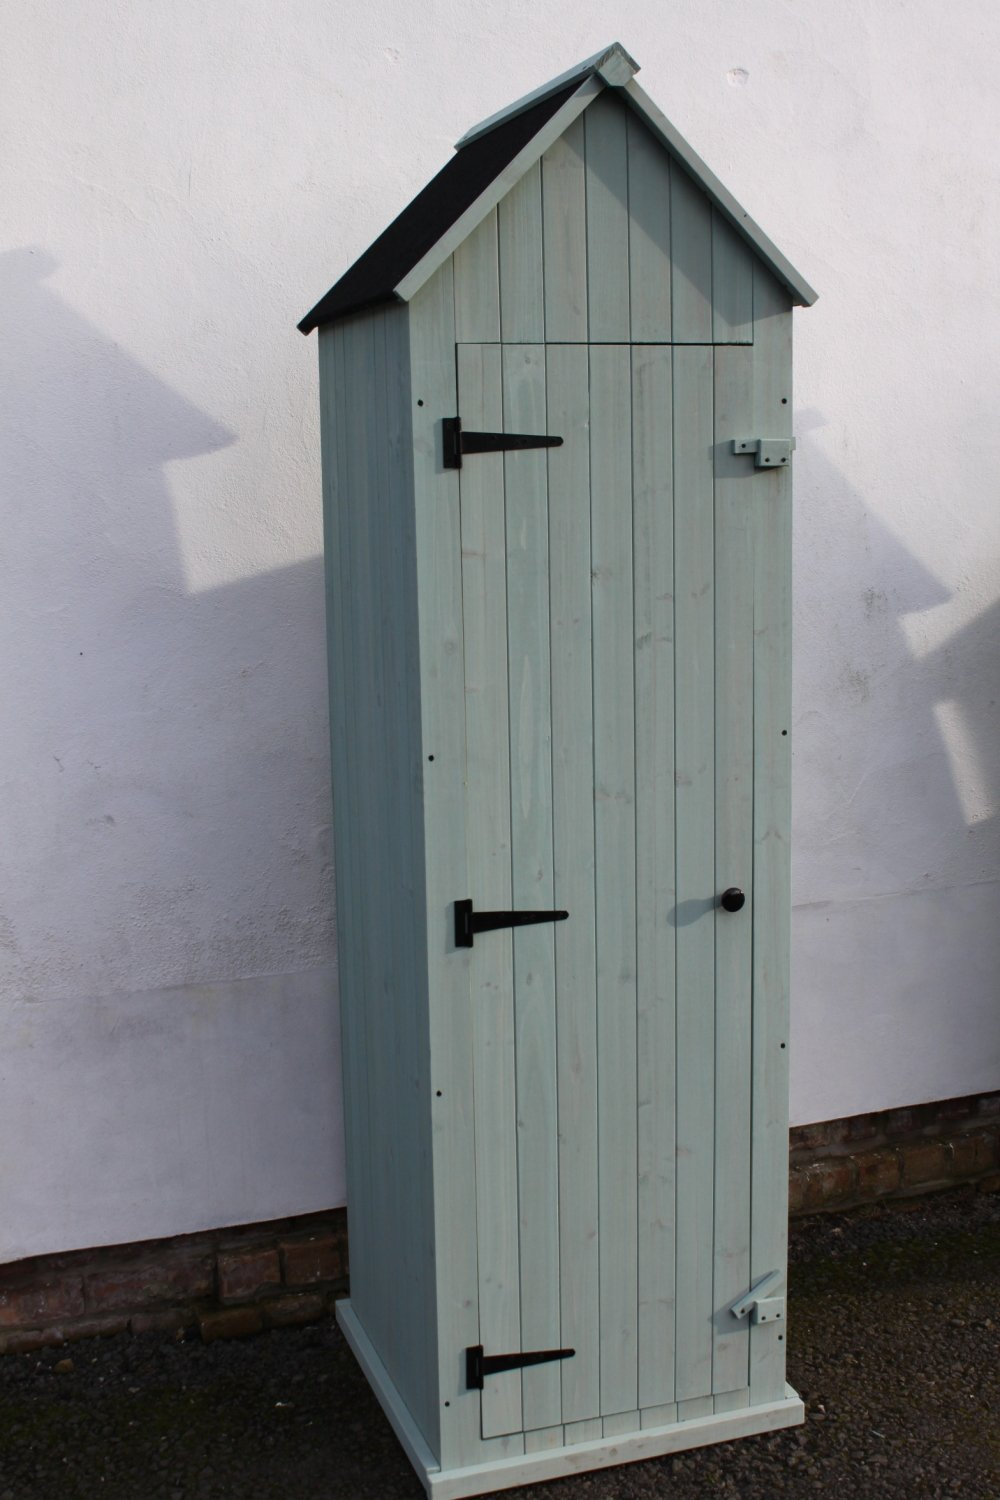 Outdoor Large Brighton Garden Wooden Storage Cabinet or Tool Shed In Blue/Green Garden Market Place